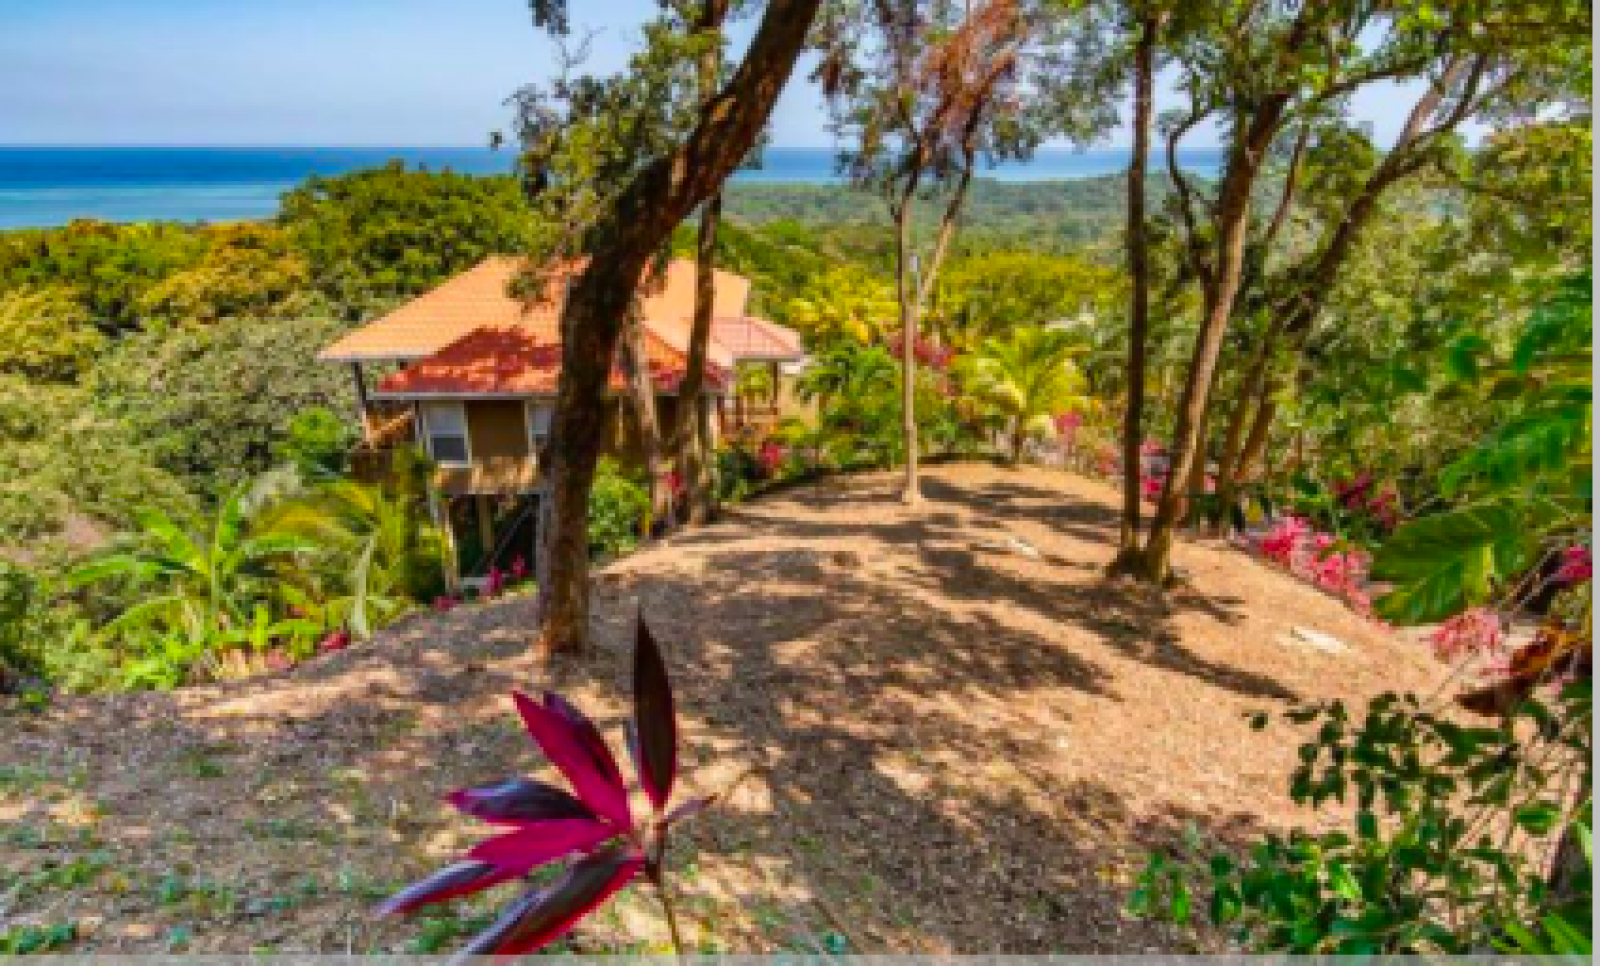 Lush tropical vegetation and sweeping views of the ocean